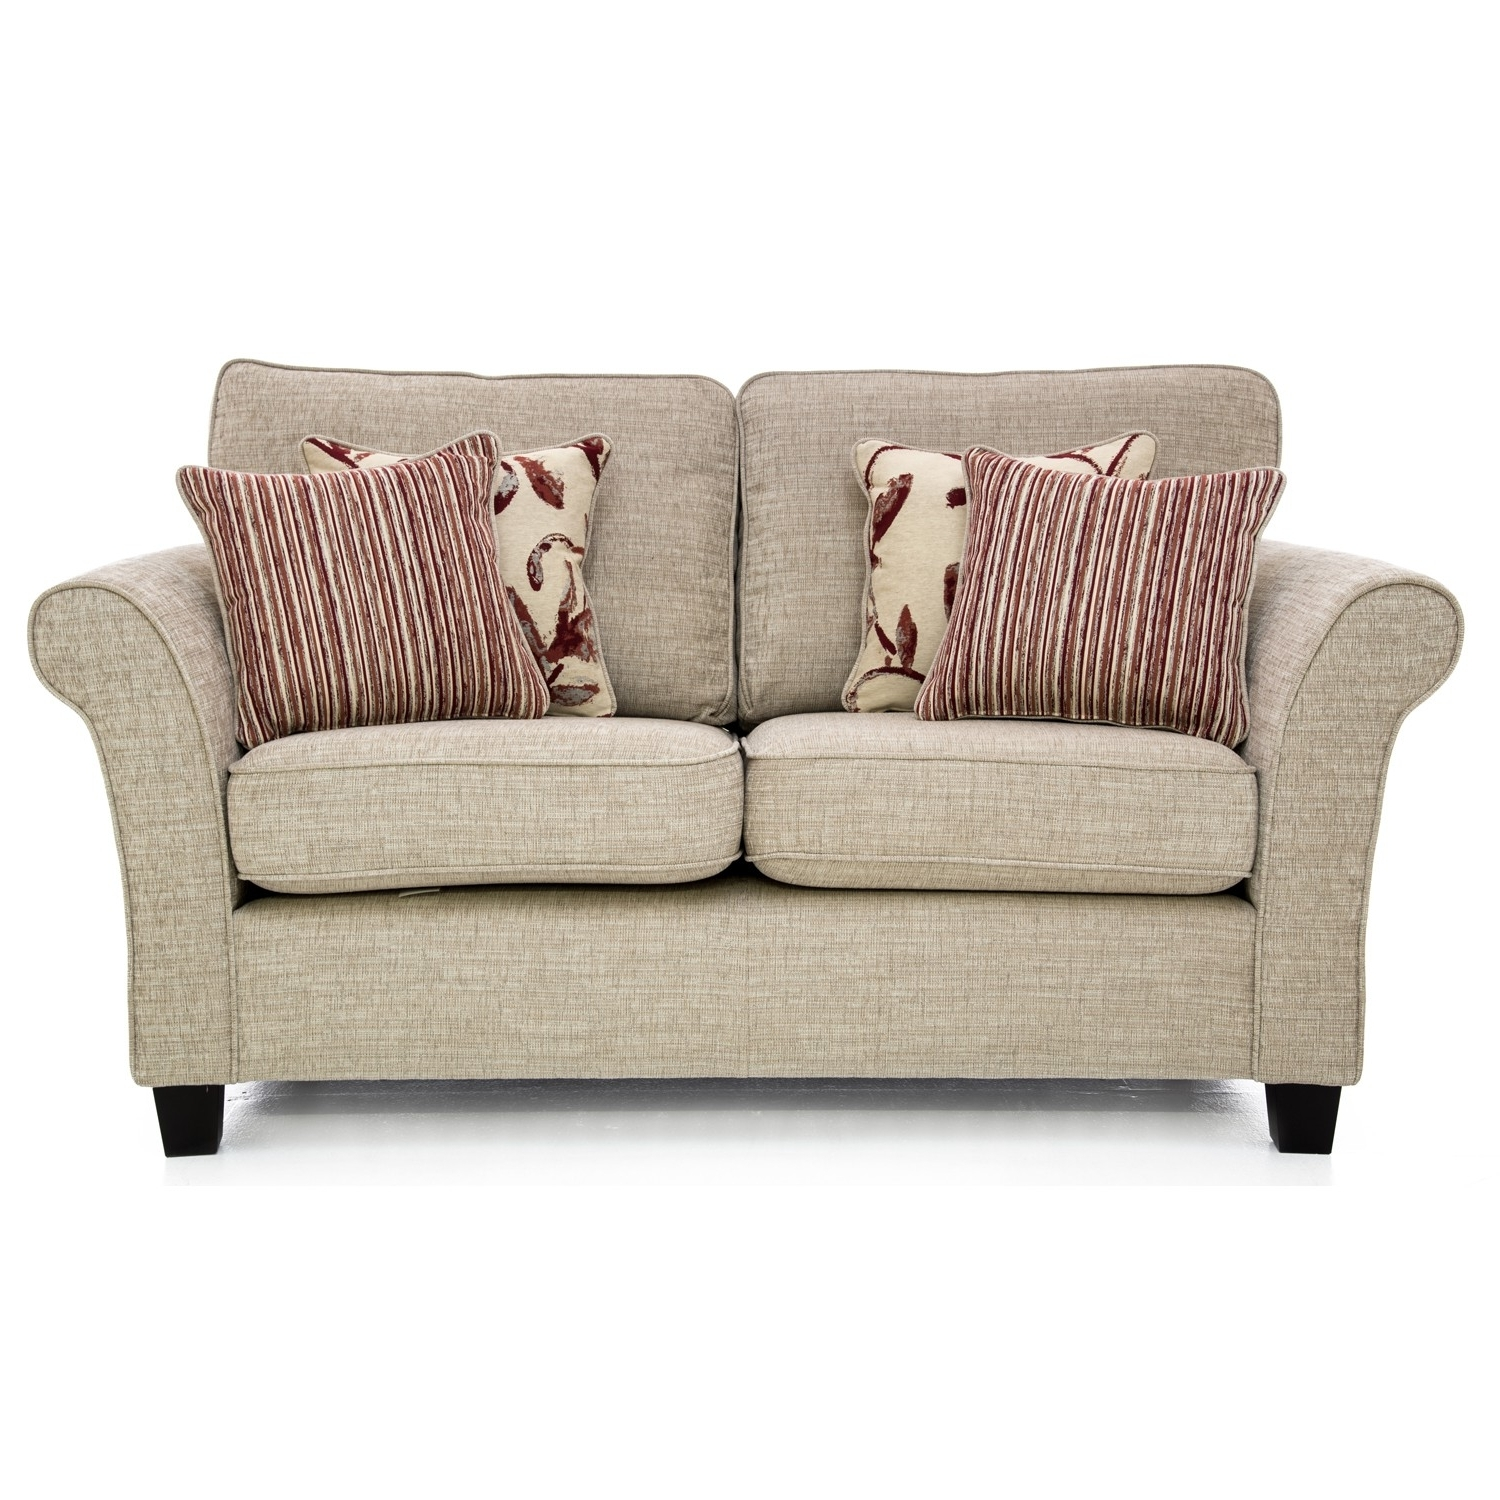 Fancy Small 2 Seater Sofa 50 Modern Sofa Inspiration With Small 2 Throughout Widely Used Small 2 Seater Sofas (View 6 of 20)